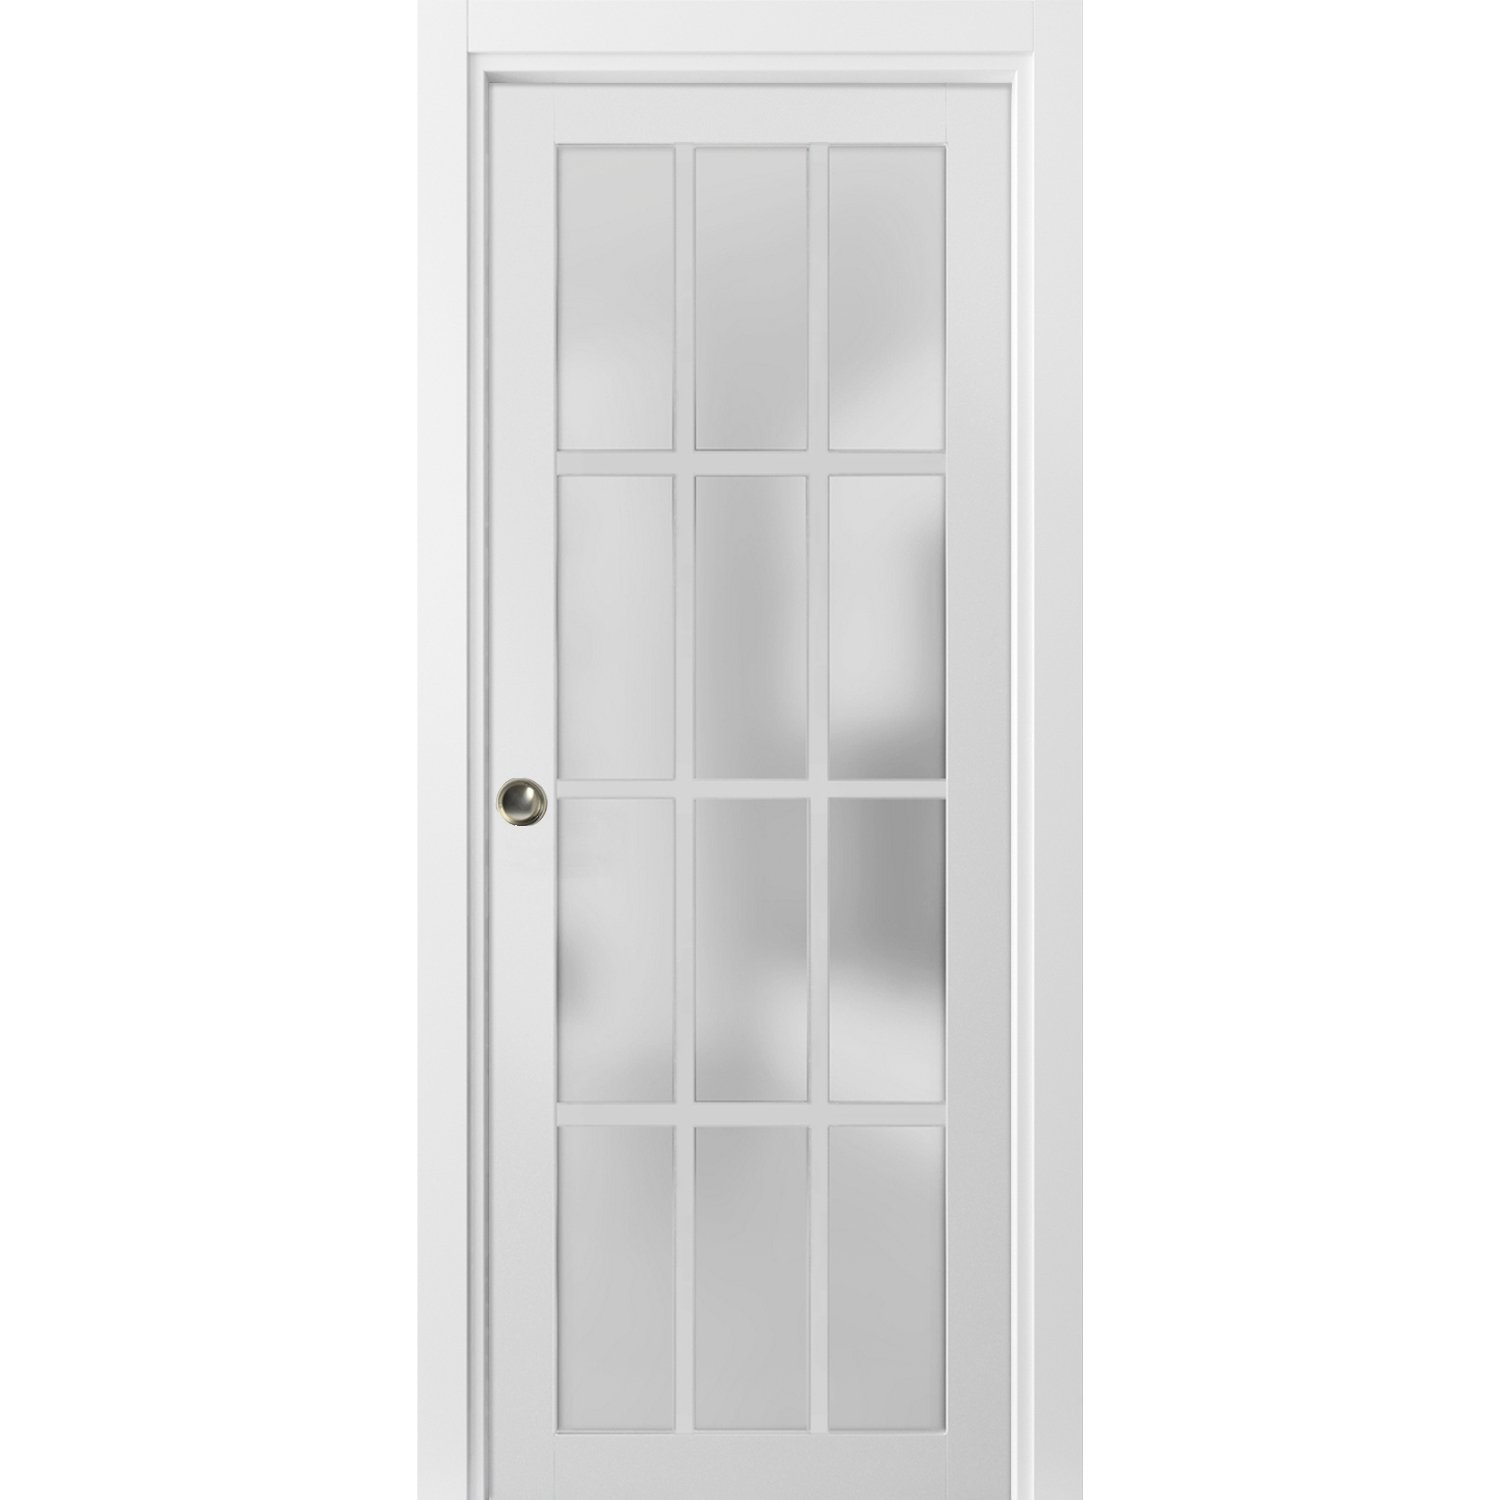 Sliding French Pocket Door 36 X 84 Inches With Frosted Glass 12 Lites Felicia 3312 Matte White Kit Trims Rail Hardware Solid Wood Interior Bedroom Sturdy Doors Walmart Com Walmart Com